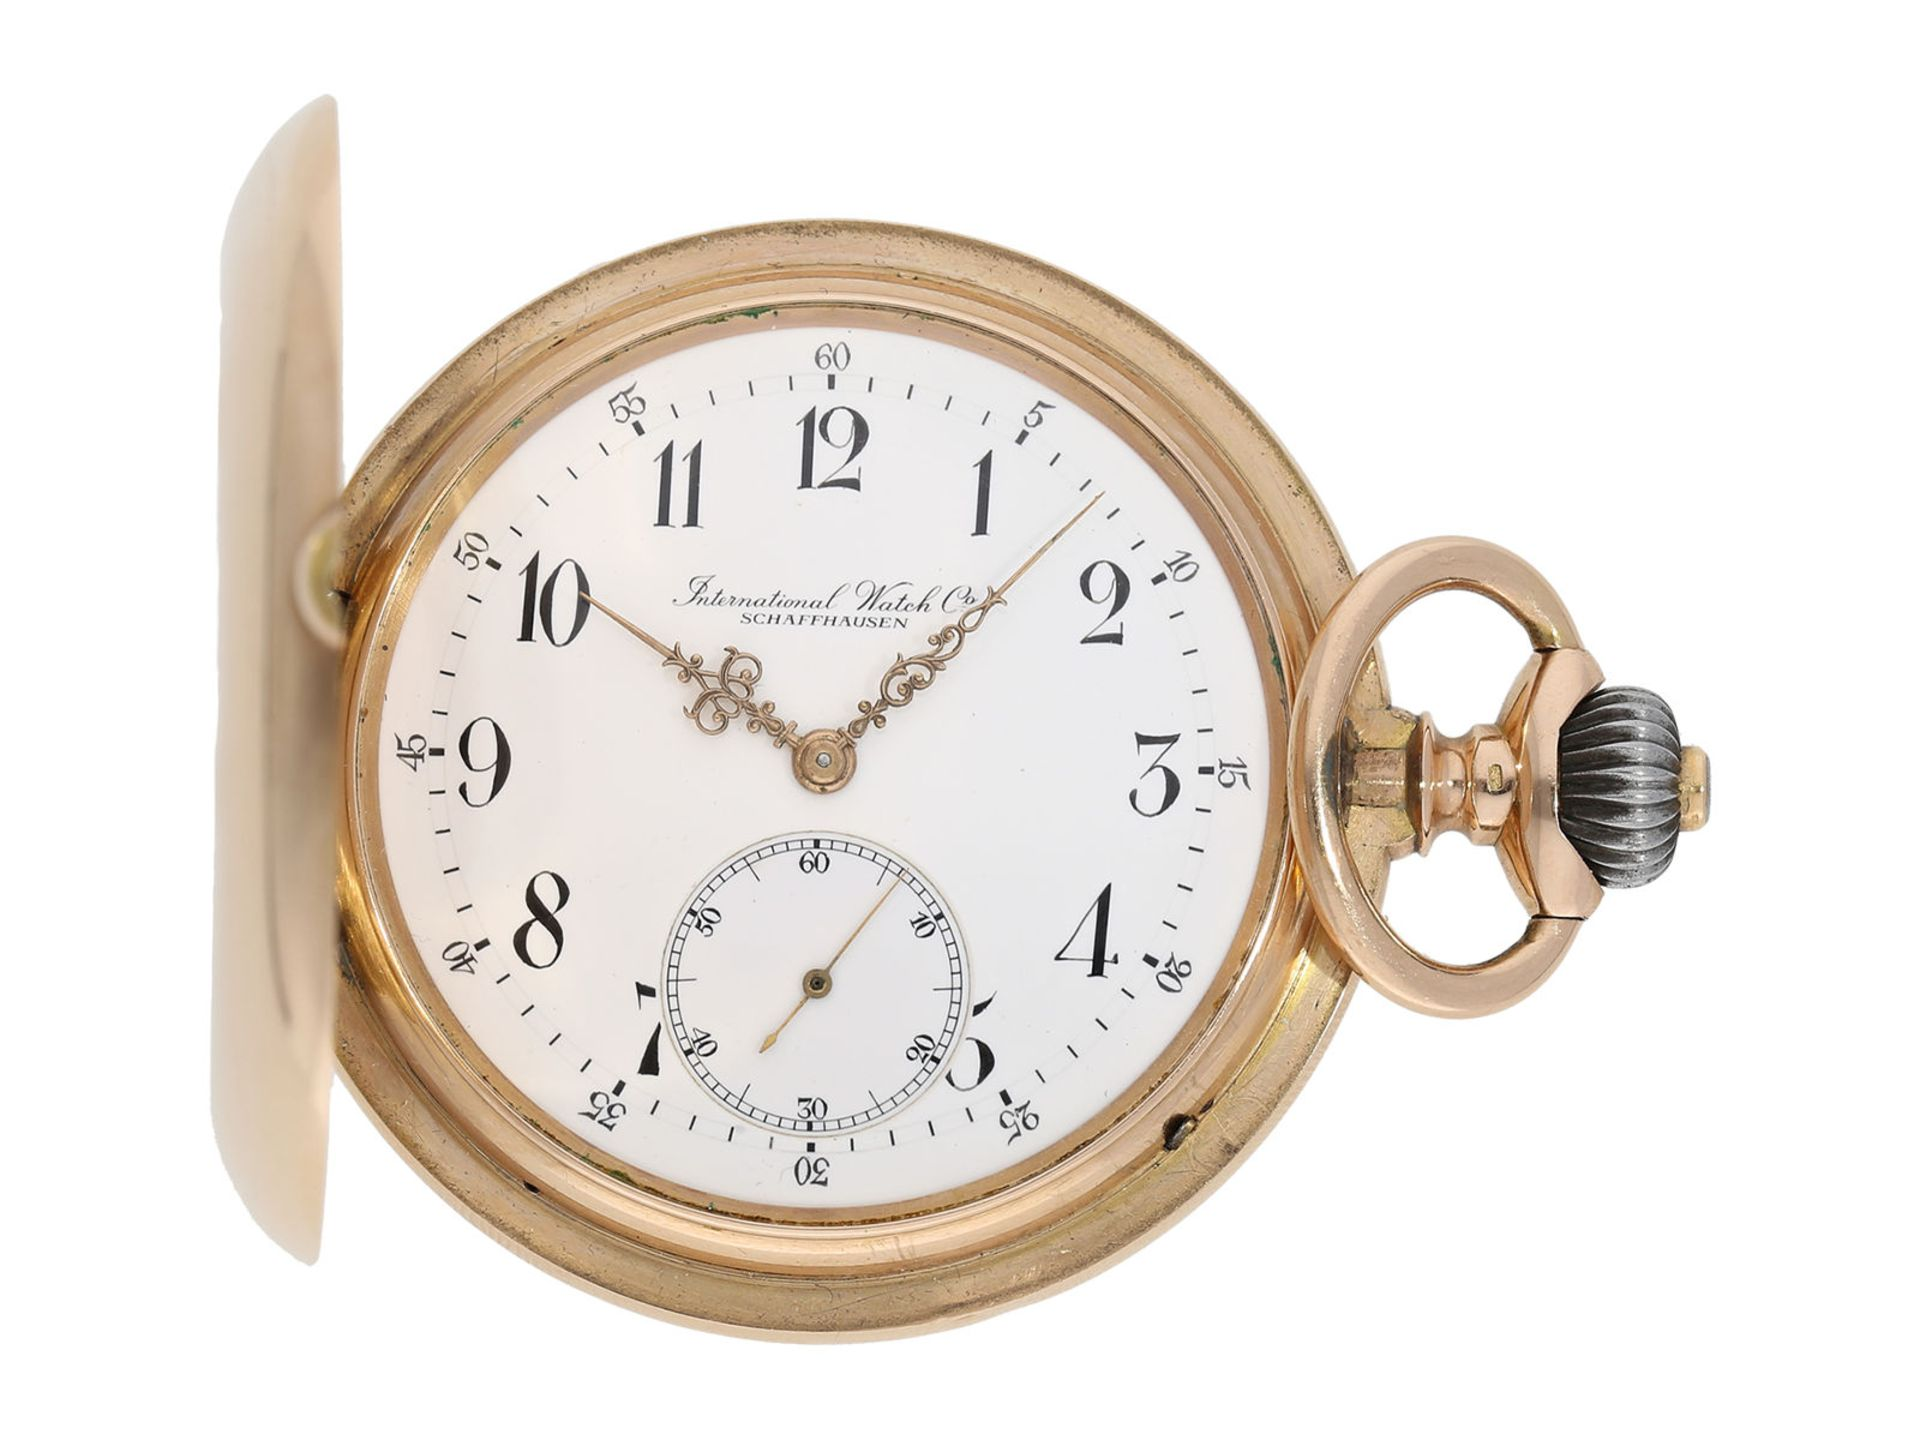 Pocket watch: particularly heavy and large, early pink gold hunting case watch, IWC Schaffhausen,